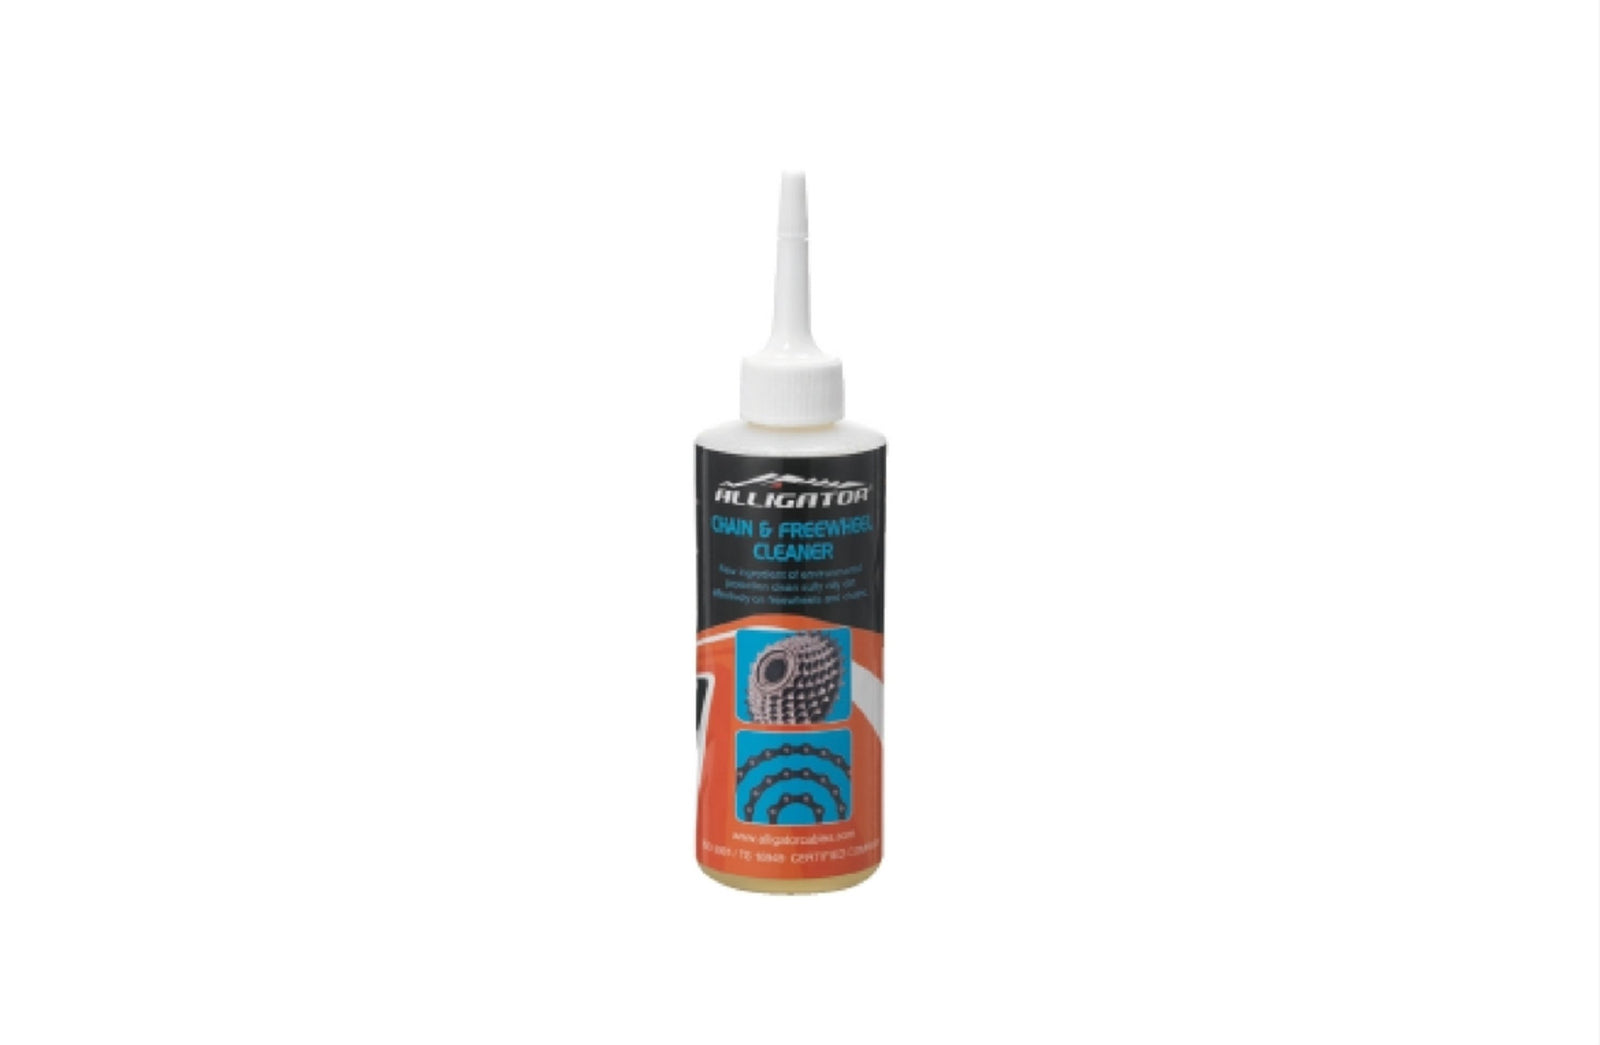 Alligator Chain & Free Wheel Cleaner 120ml